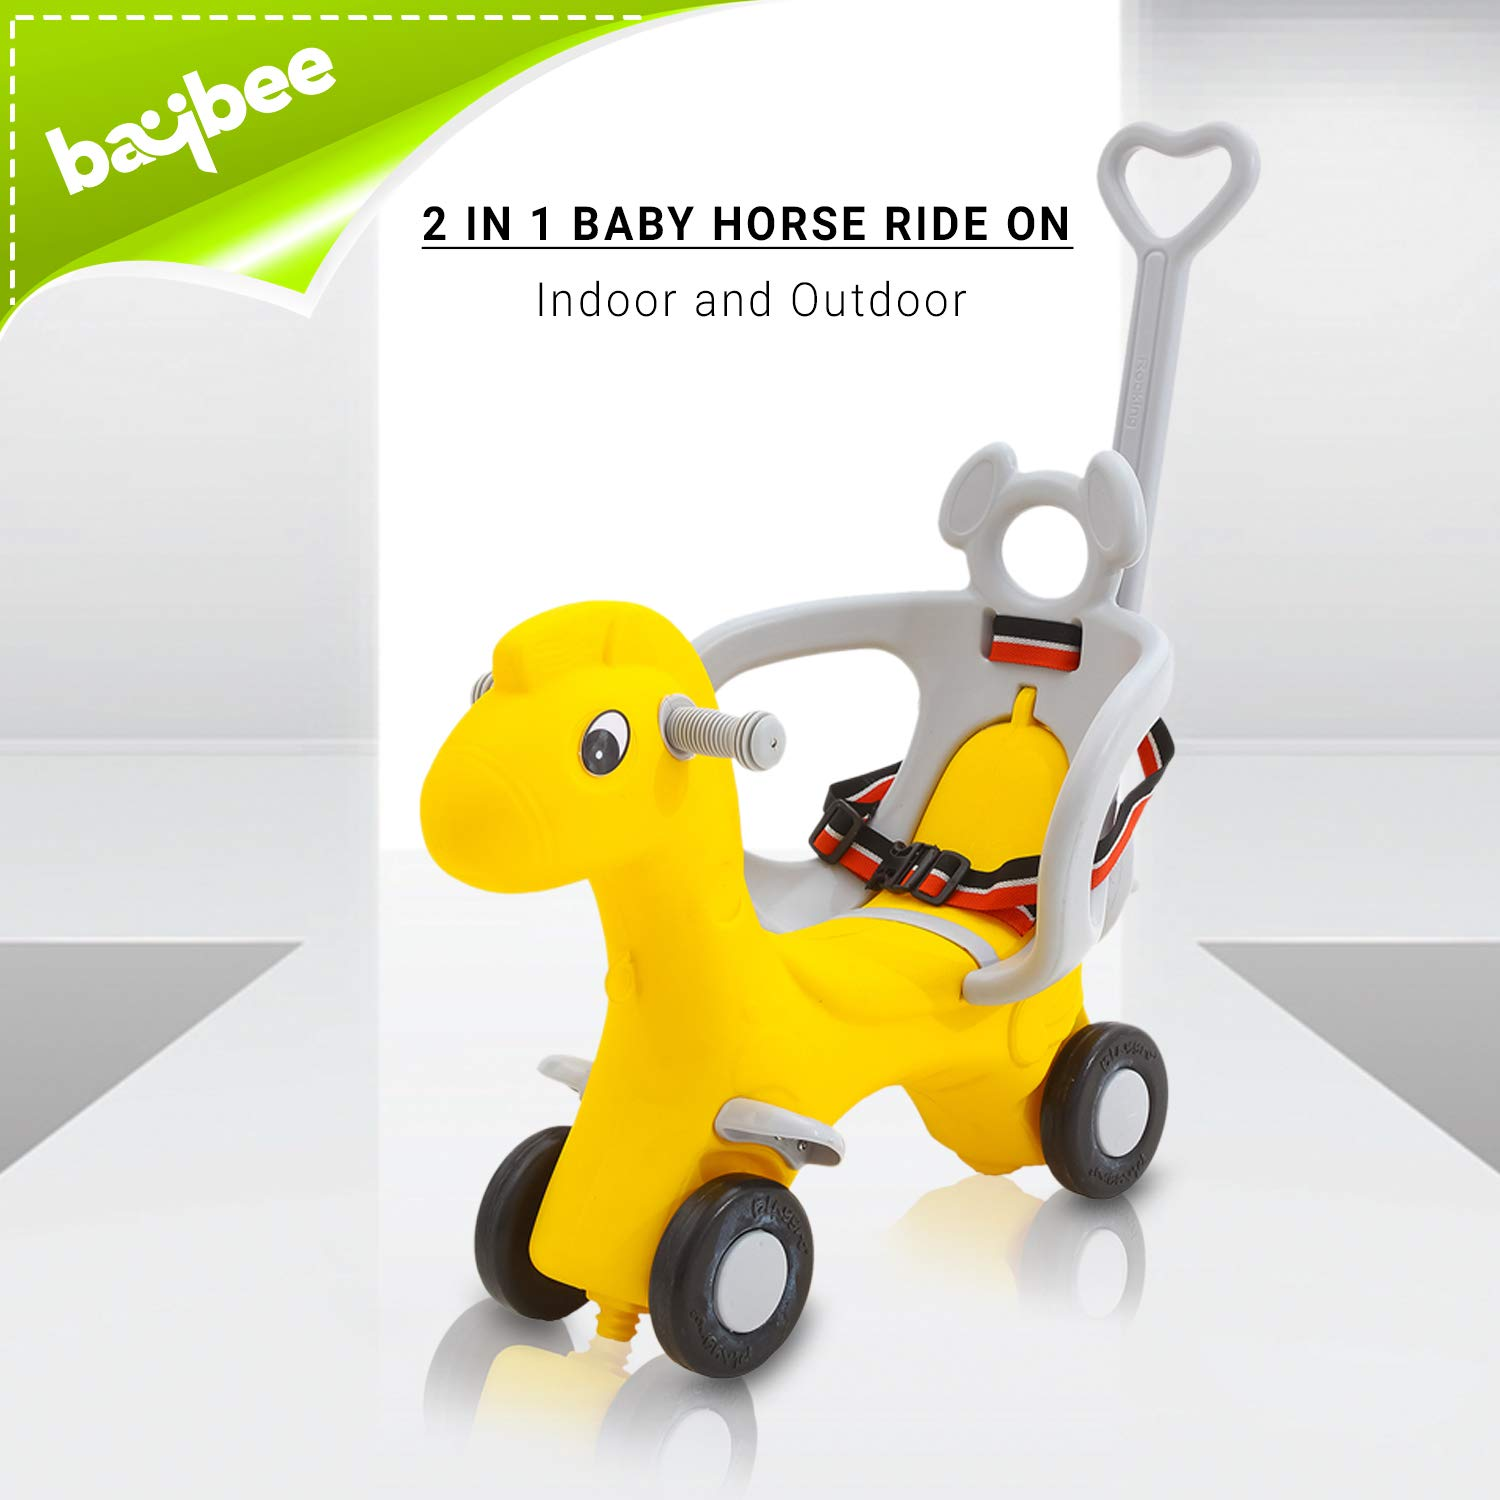 Baybee Baby Horse Rider For Kids Ride On Car With Push Handle Toy Car Babies Toddler Plastic Baby Car Comfortable Seat 1 5 Years Old Child Indoors And Outdoors Kids Suitable For